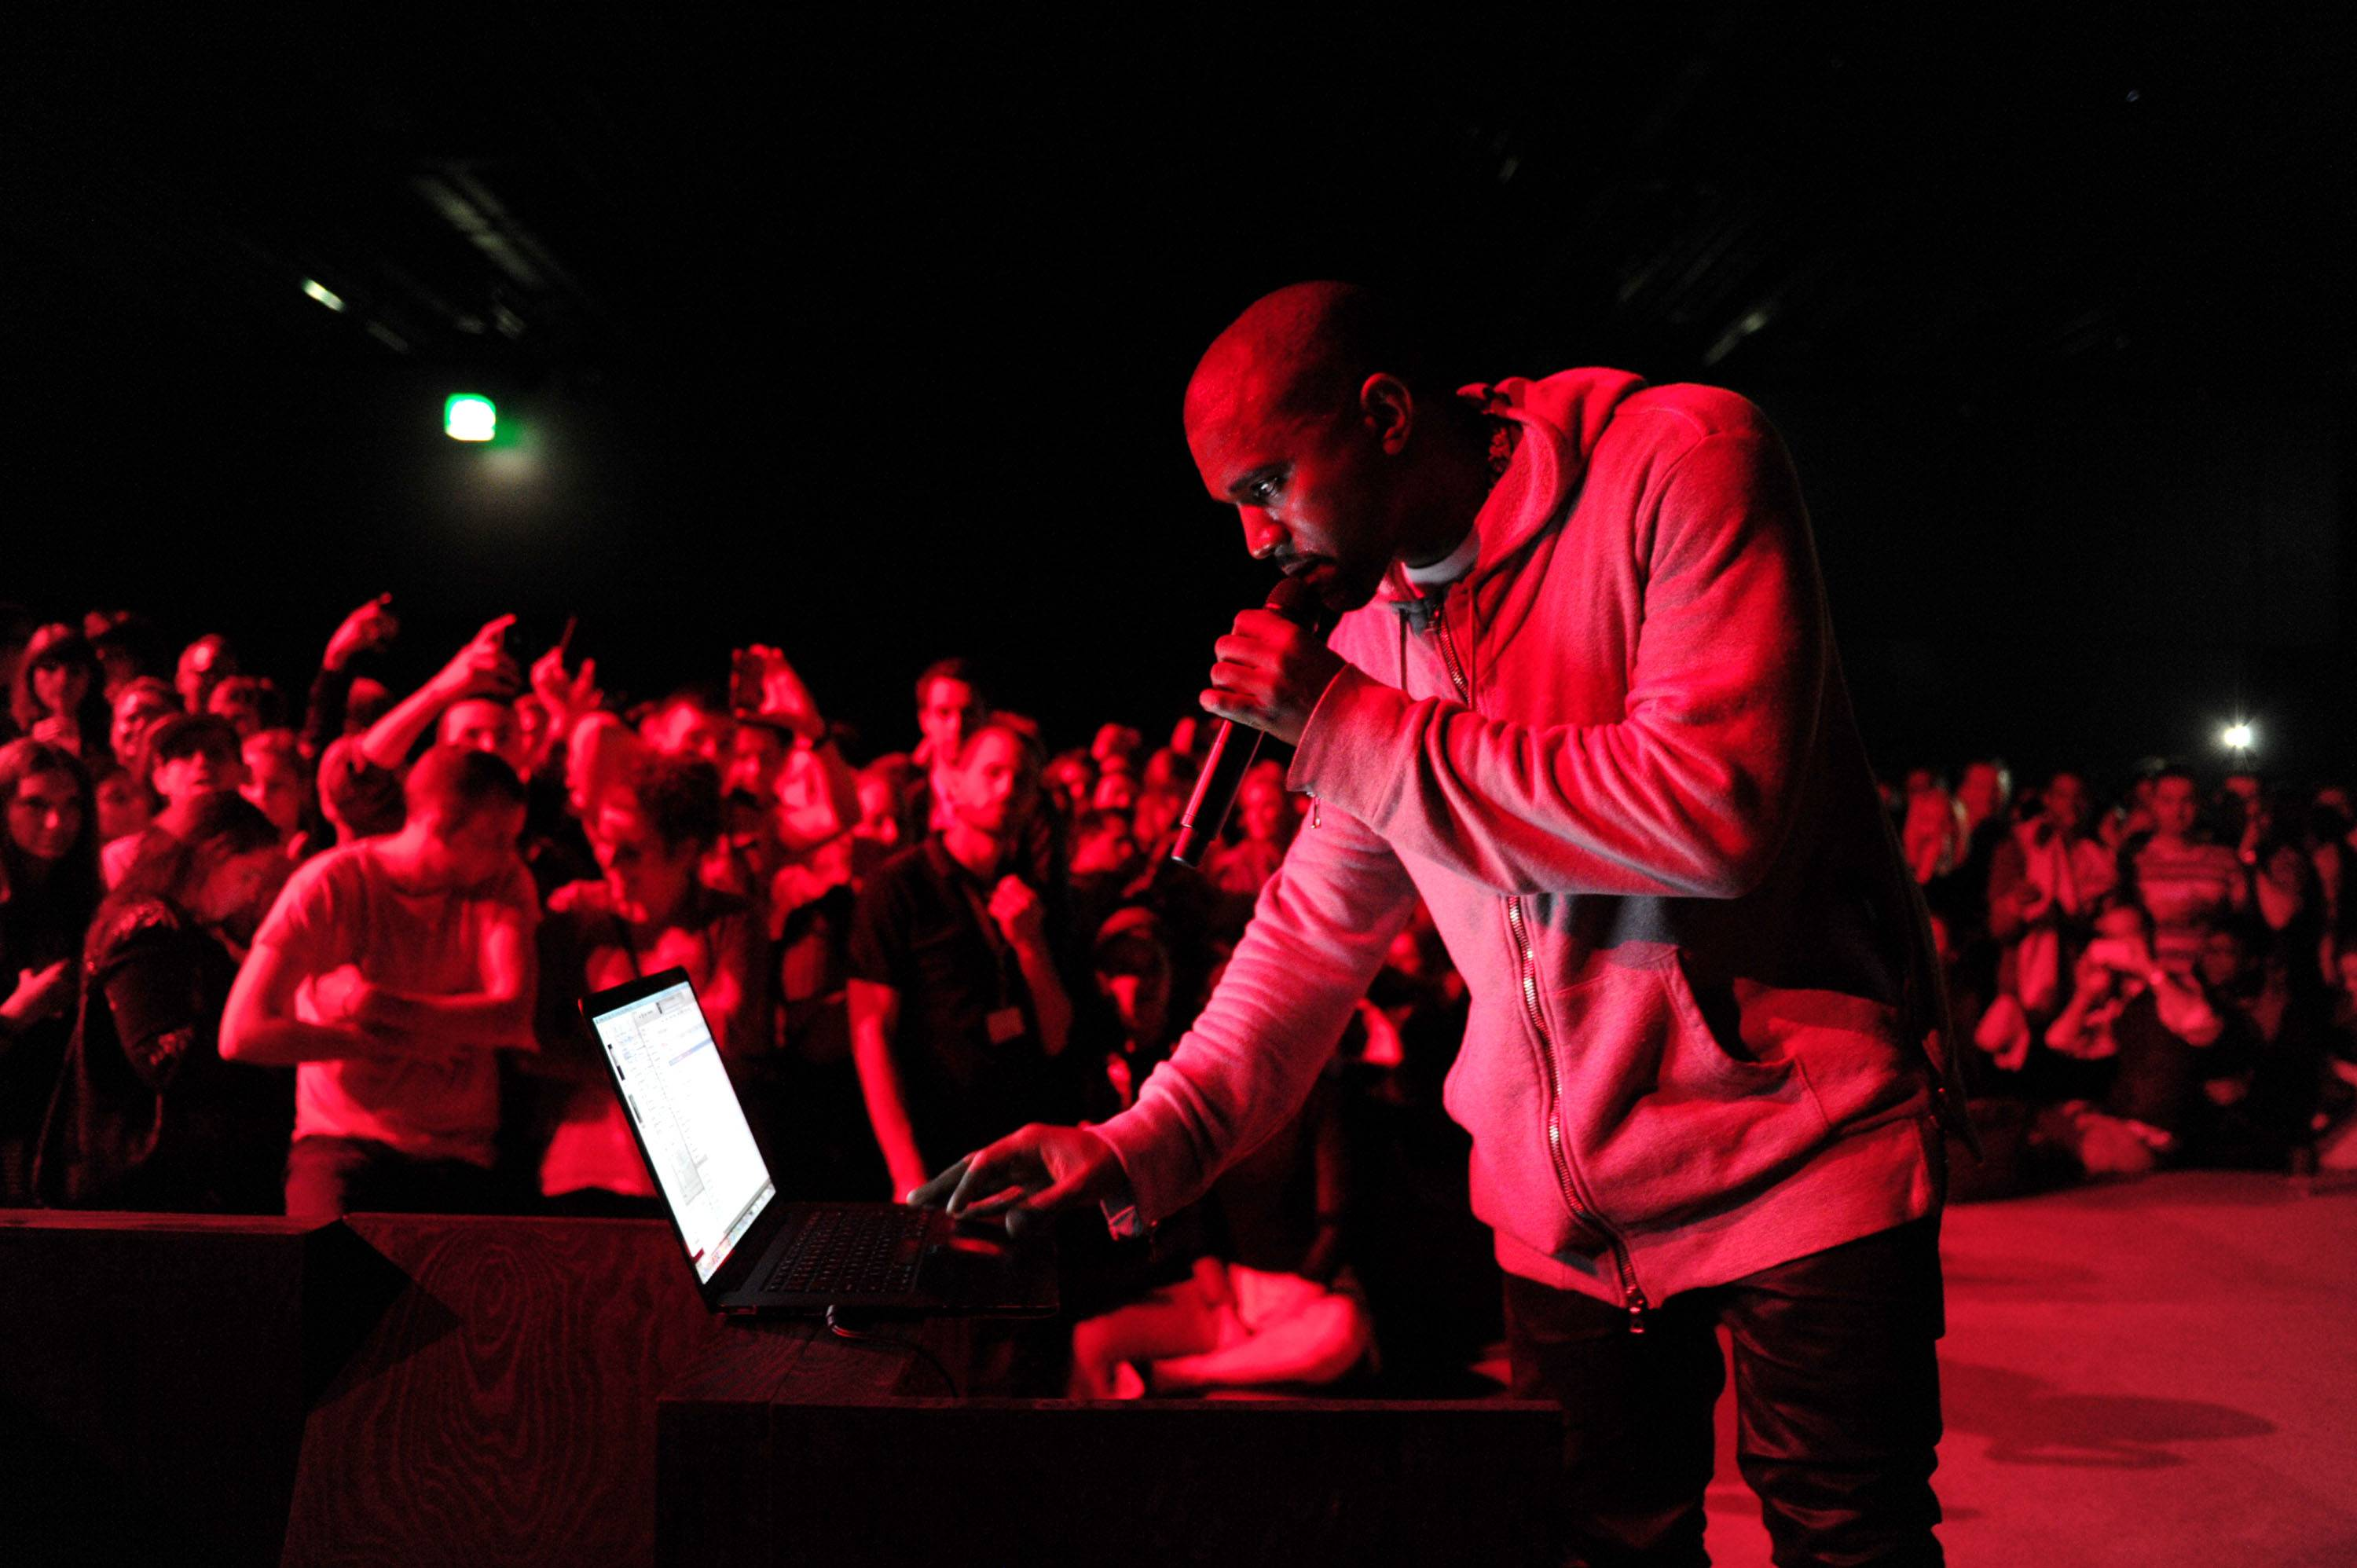 Design Miami Presents Kanye West World Exclusive Listening Party for His New Albulm